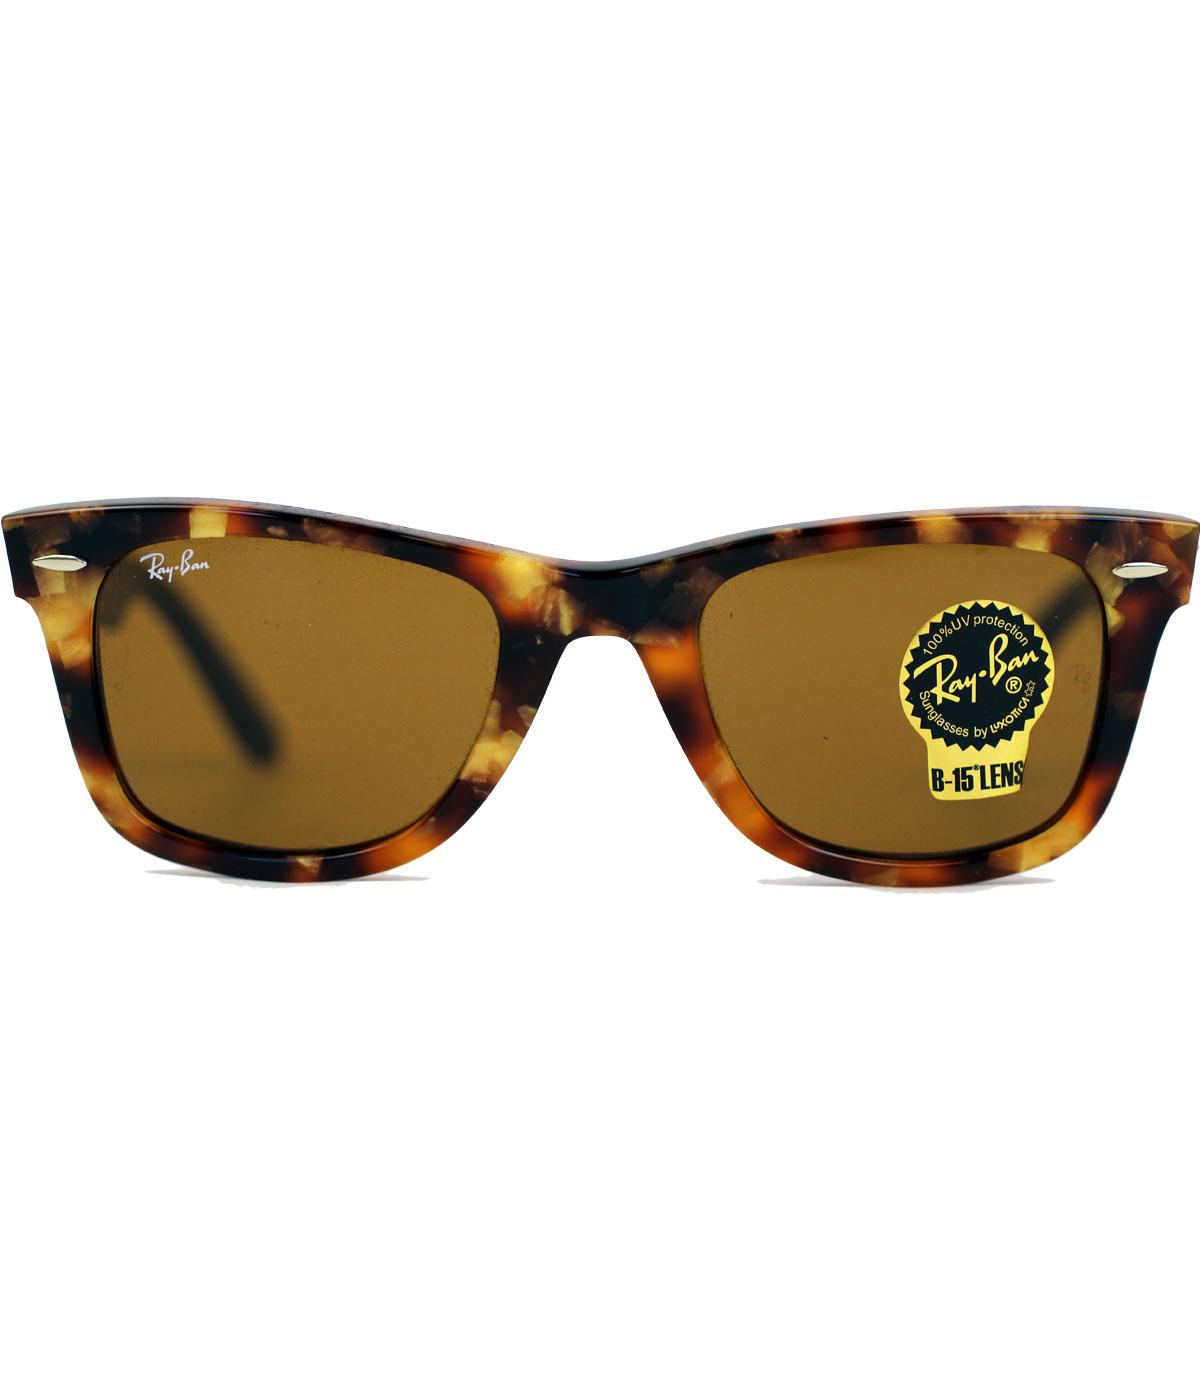 2ca397bd67 RAY-BAN 0RB2140 Retro Spotted Brown Havana Wayfarer Sunglasses